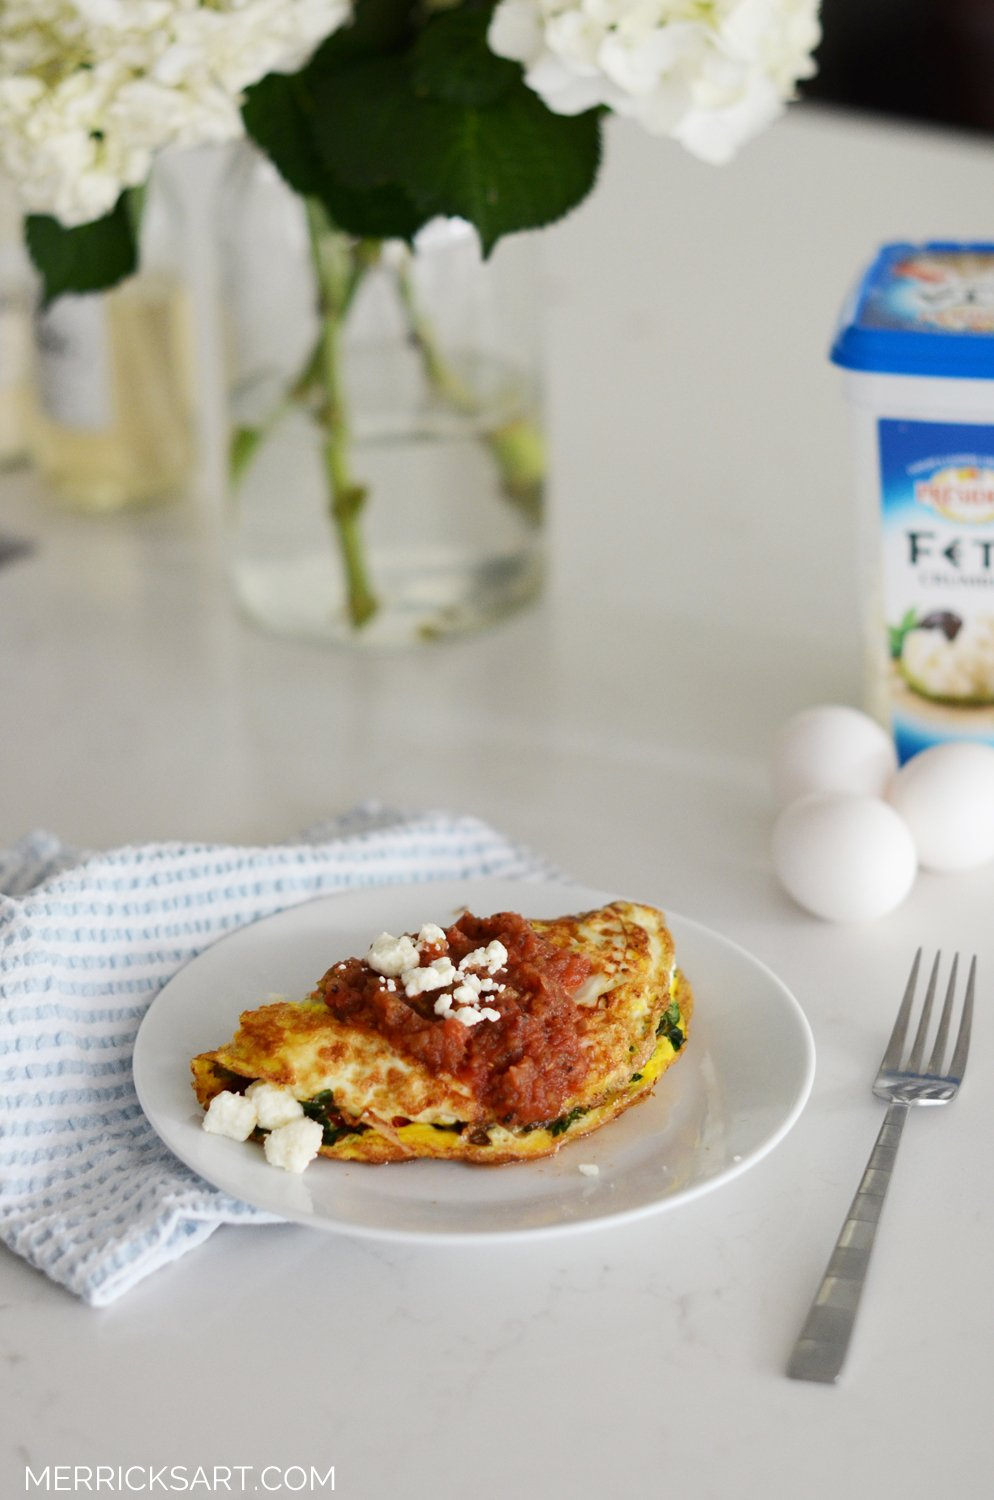 Merrick's Art Easy Breakfast Omelet